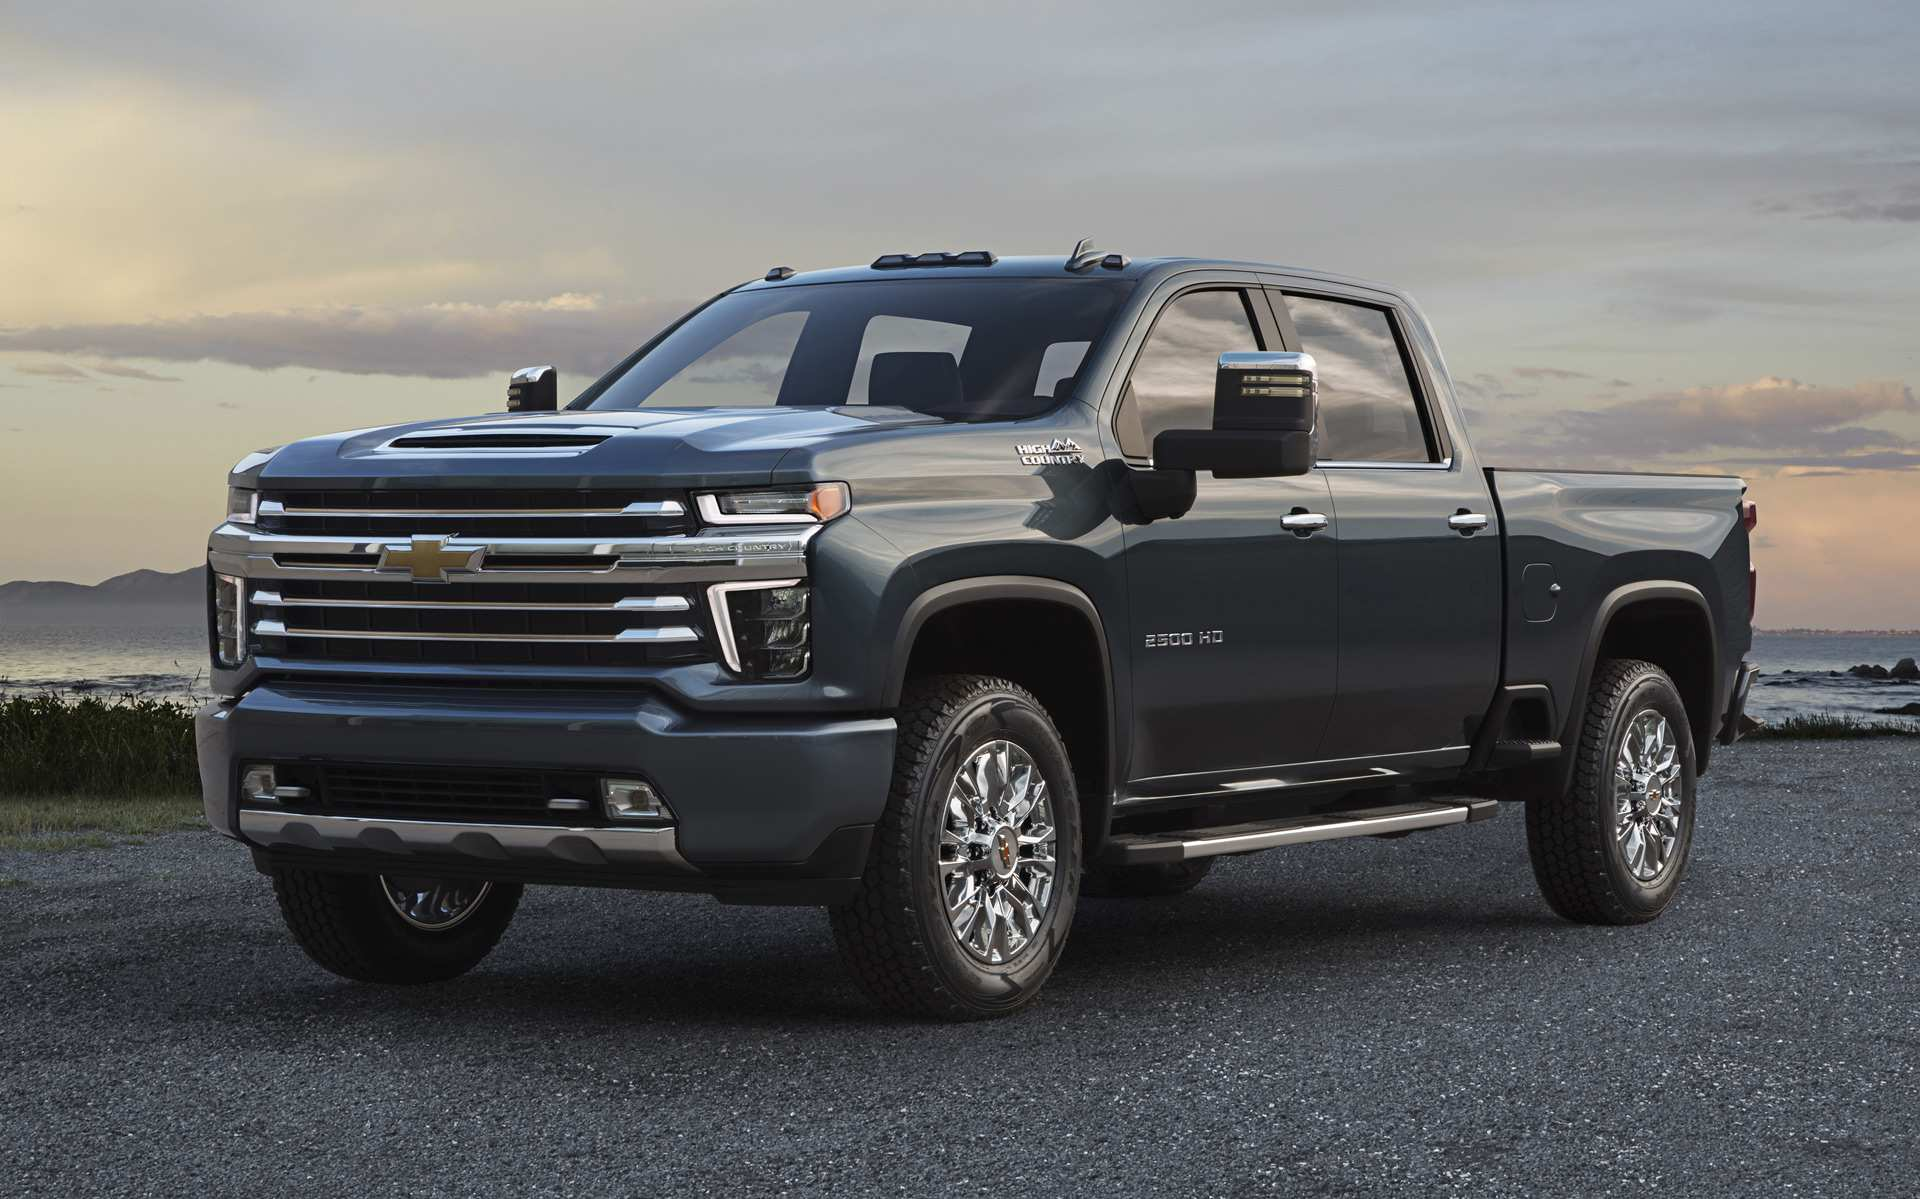 97 Best 2020 Chevrolet Silverado Images Engine